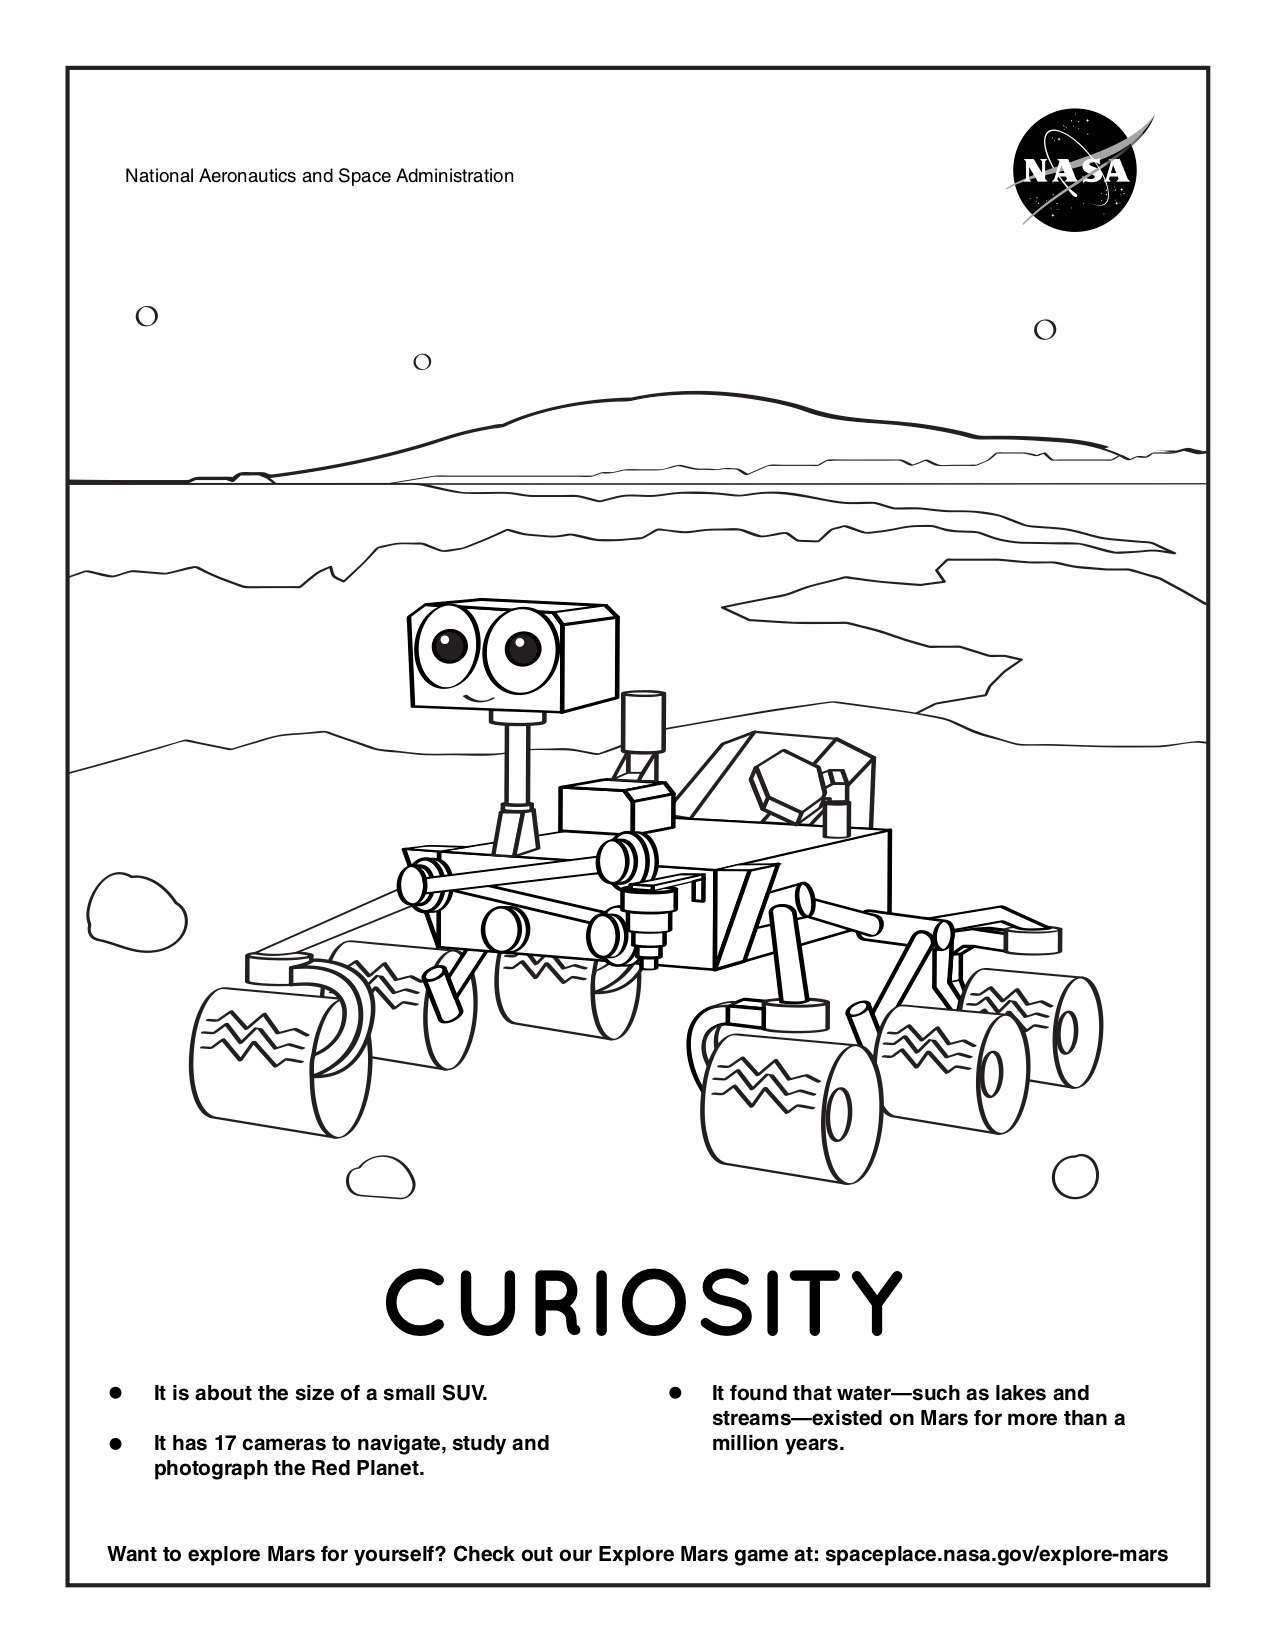 Coloring page for Curiosity.